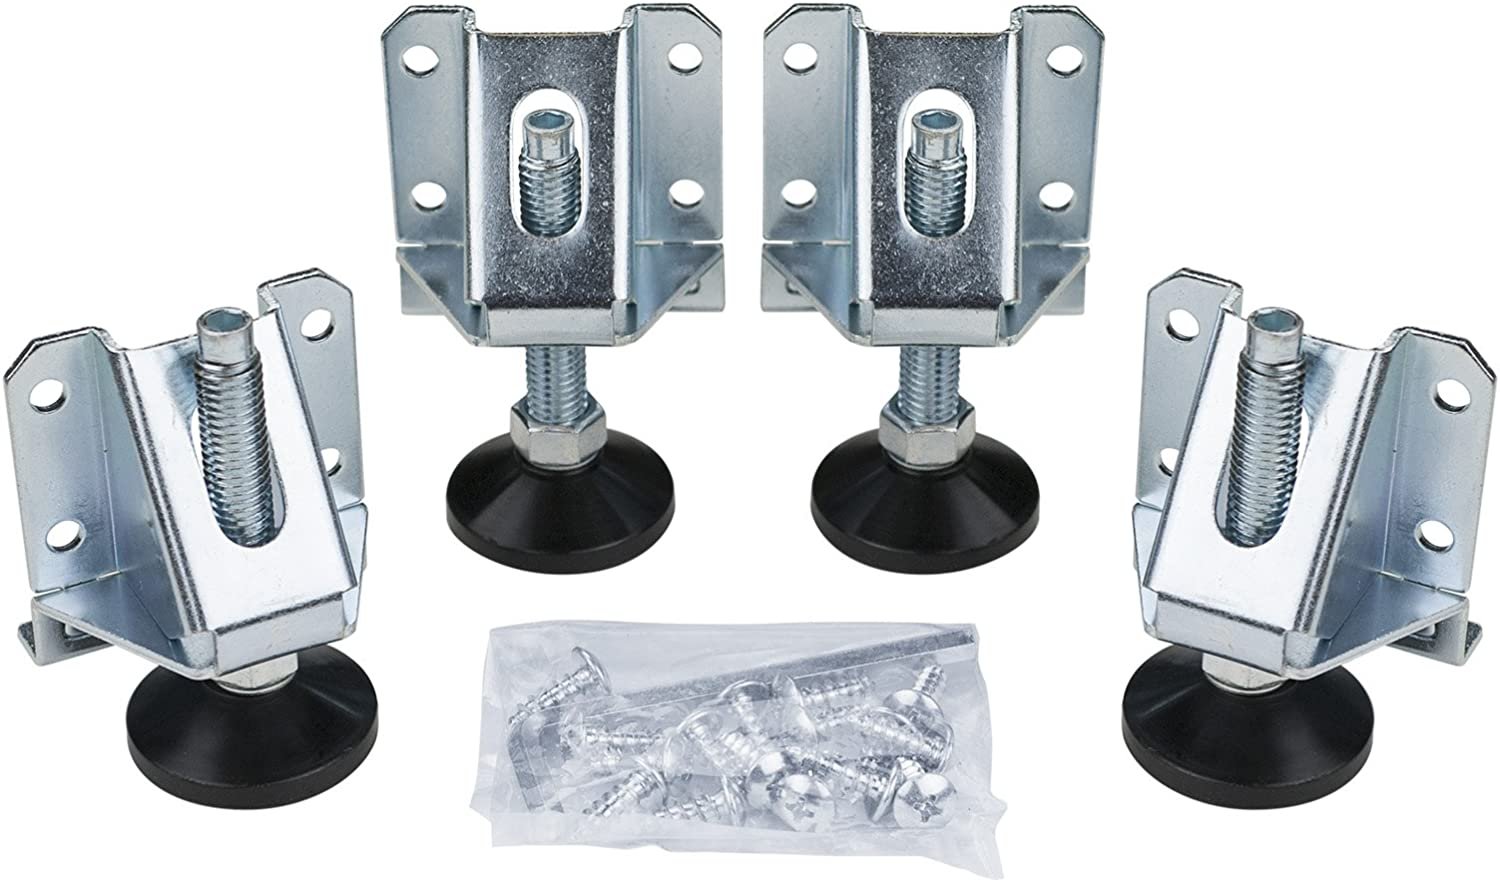 POWERTEC, 4-Pack 71136 Heavy Duty Kit   4 Pack   Leveler Legs with Installation Screws and Lock Nuts for Cabinets Furniture Shelves Tables